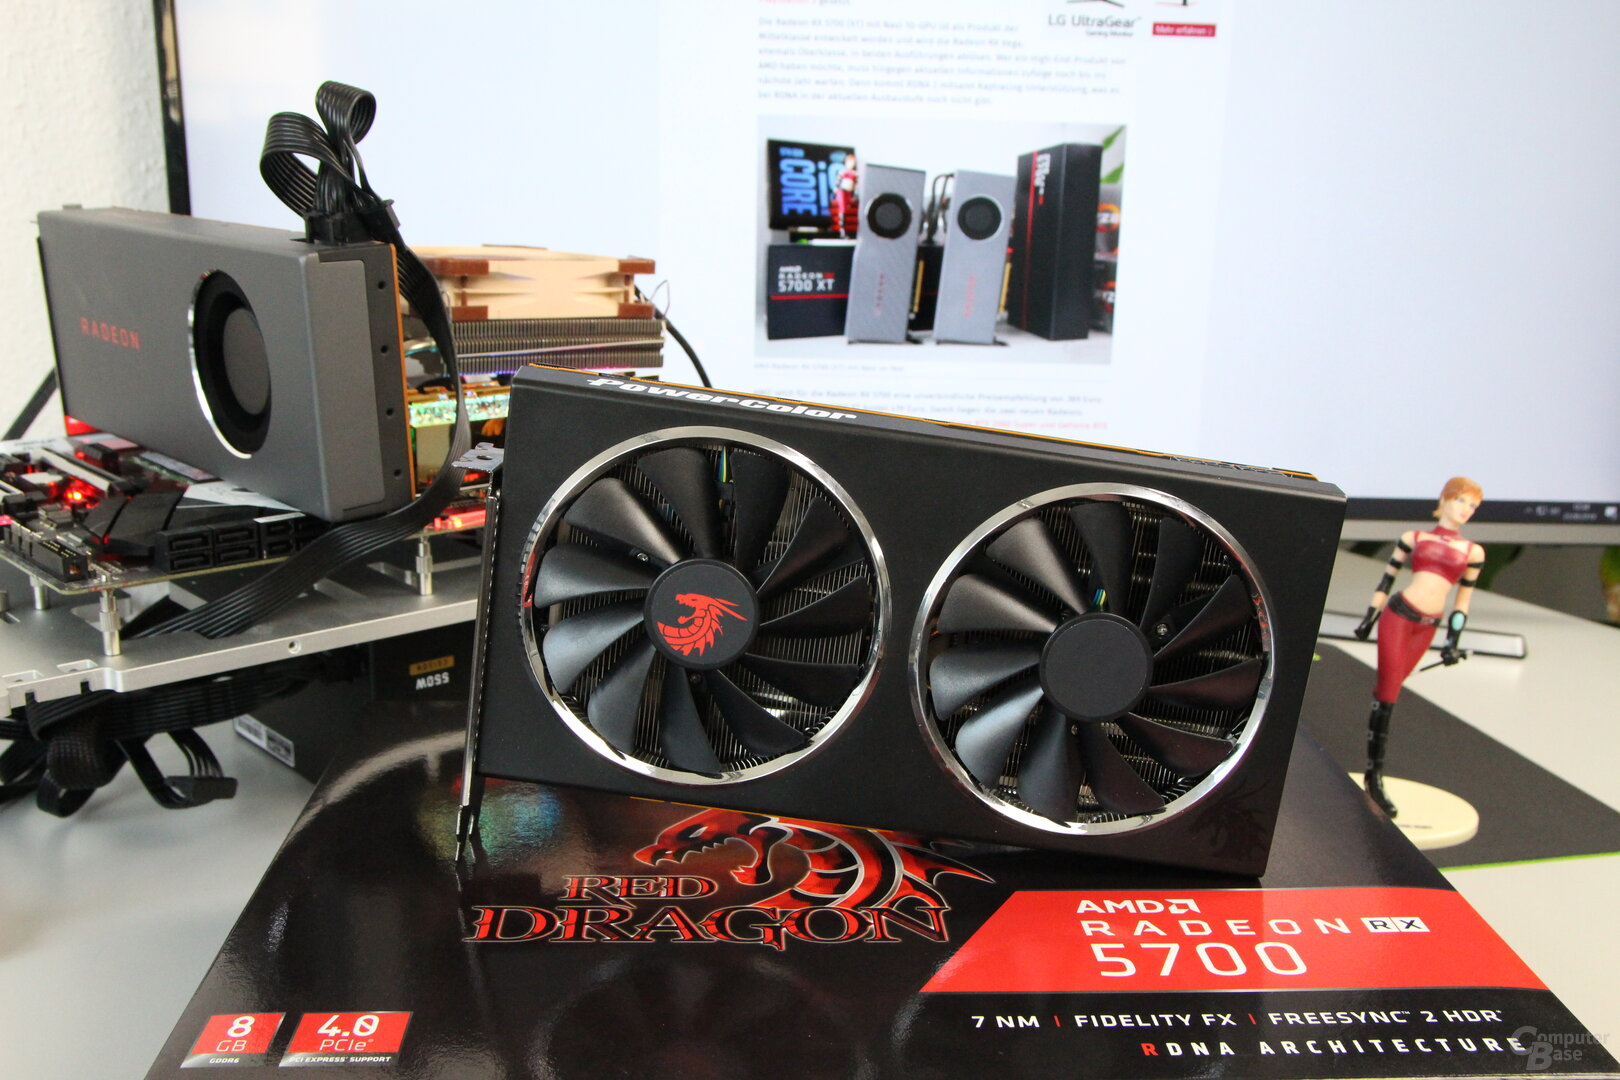 Die PowerColor Radeon RX 5700 Red Dragon im Test